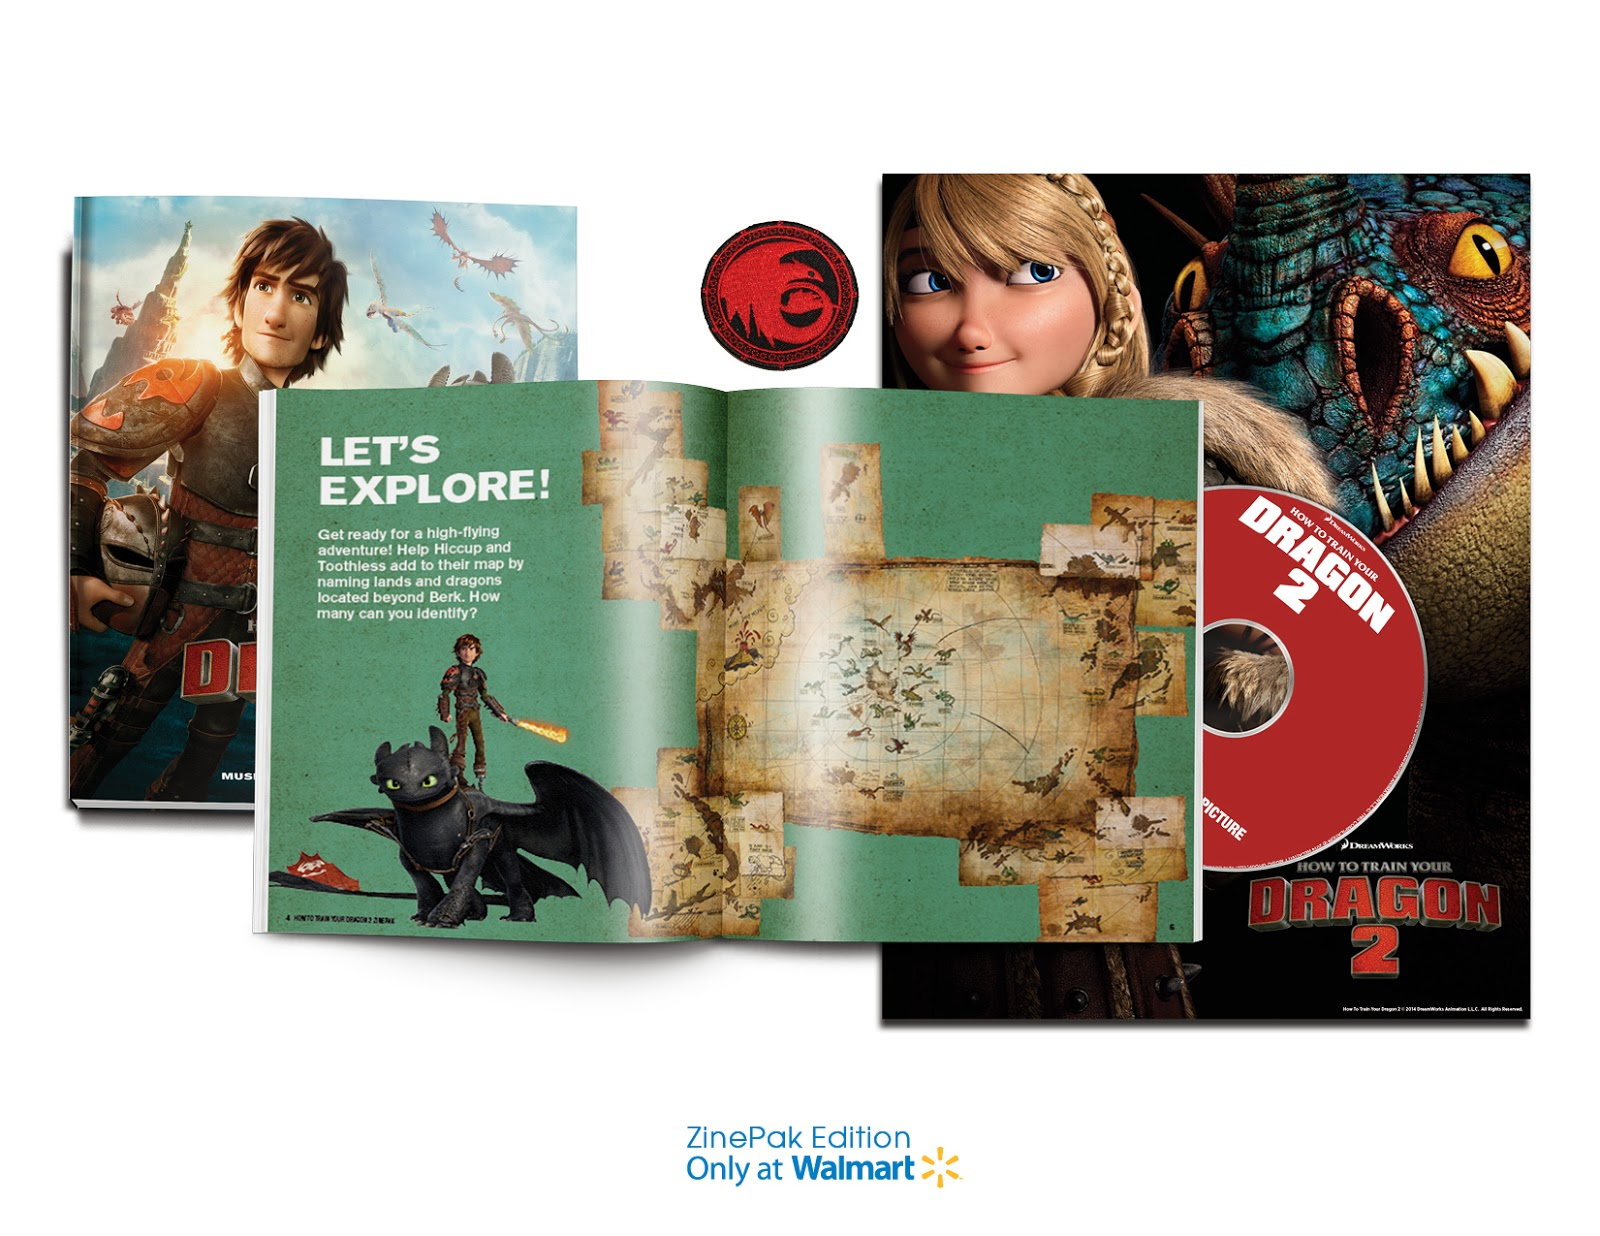 How To Train Your Dragon 2 ZinePak Giveaway. Ends 6/17.